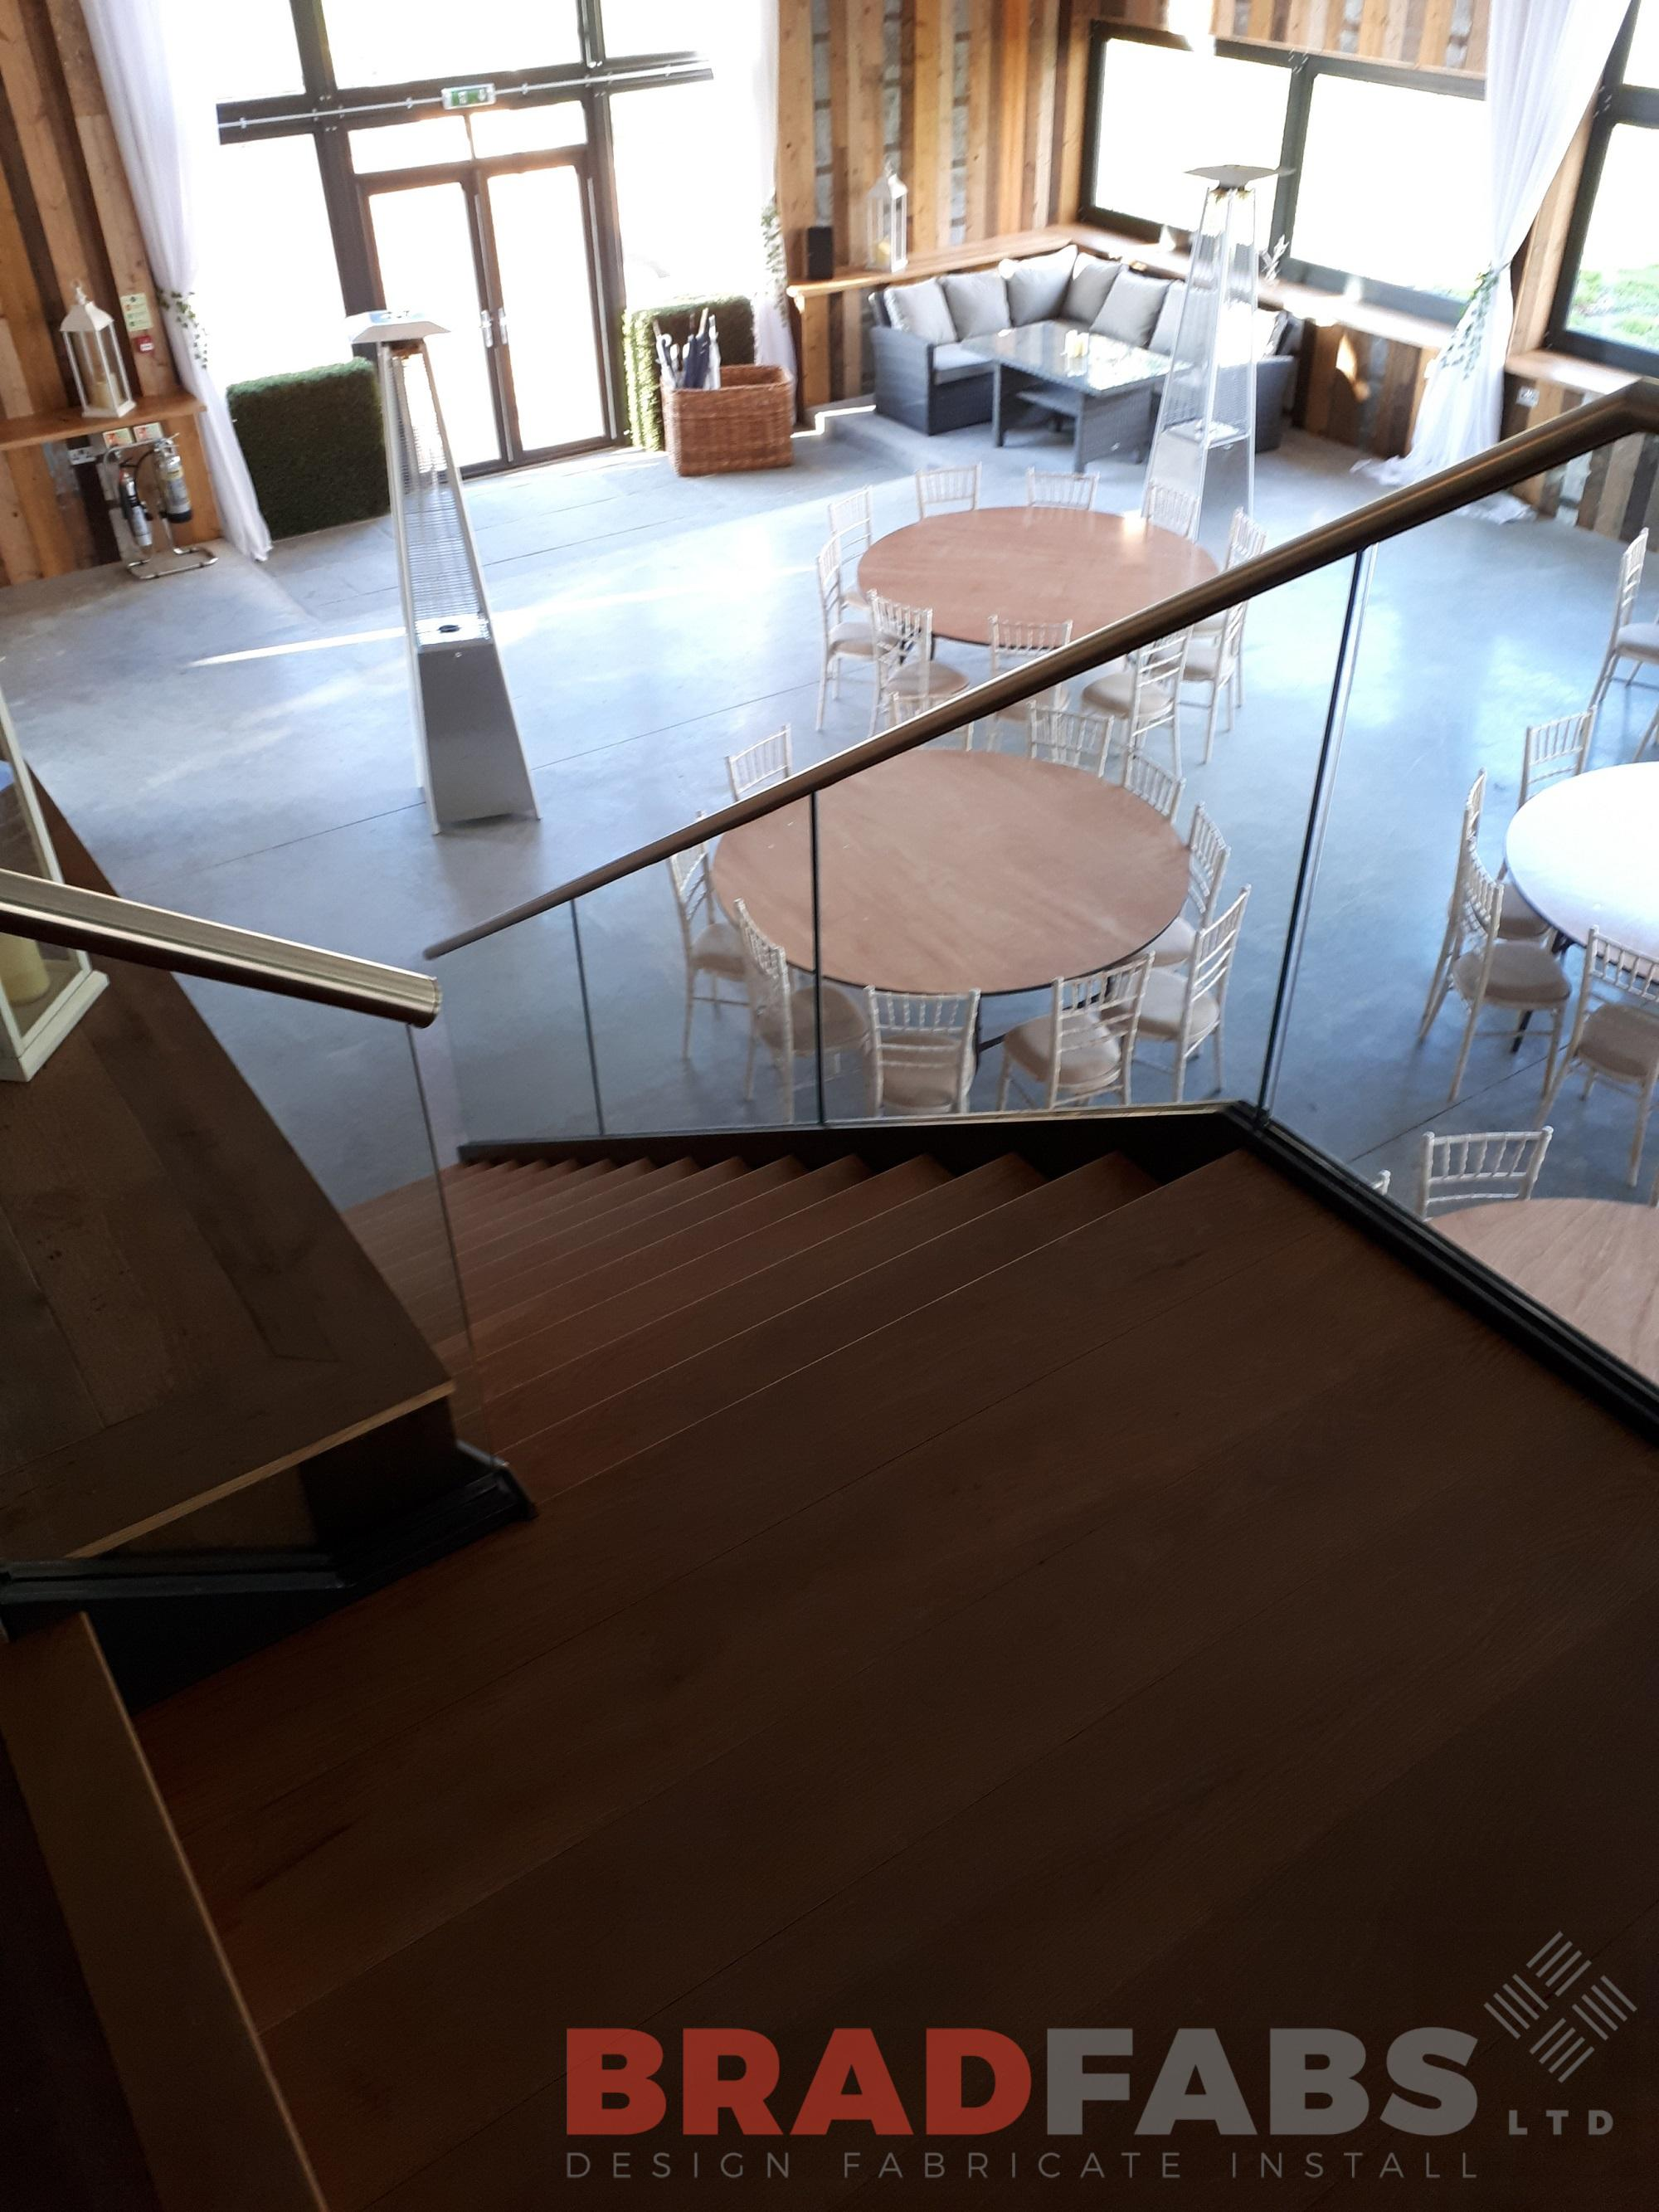 Stainless steel handrail, open oak treads, glass infill panels, Bradfabs